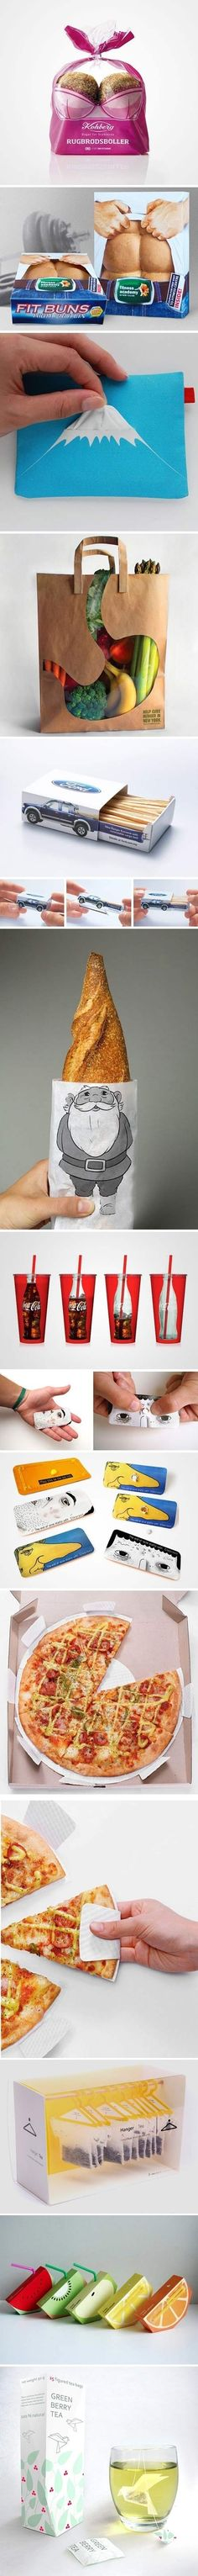 Clever Product Package Designs...